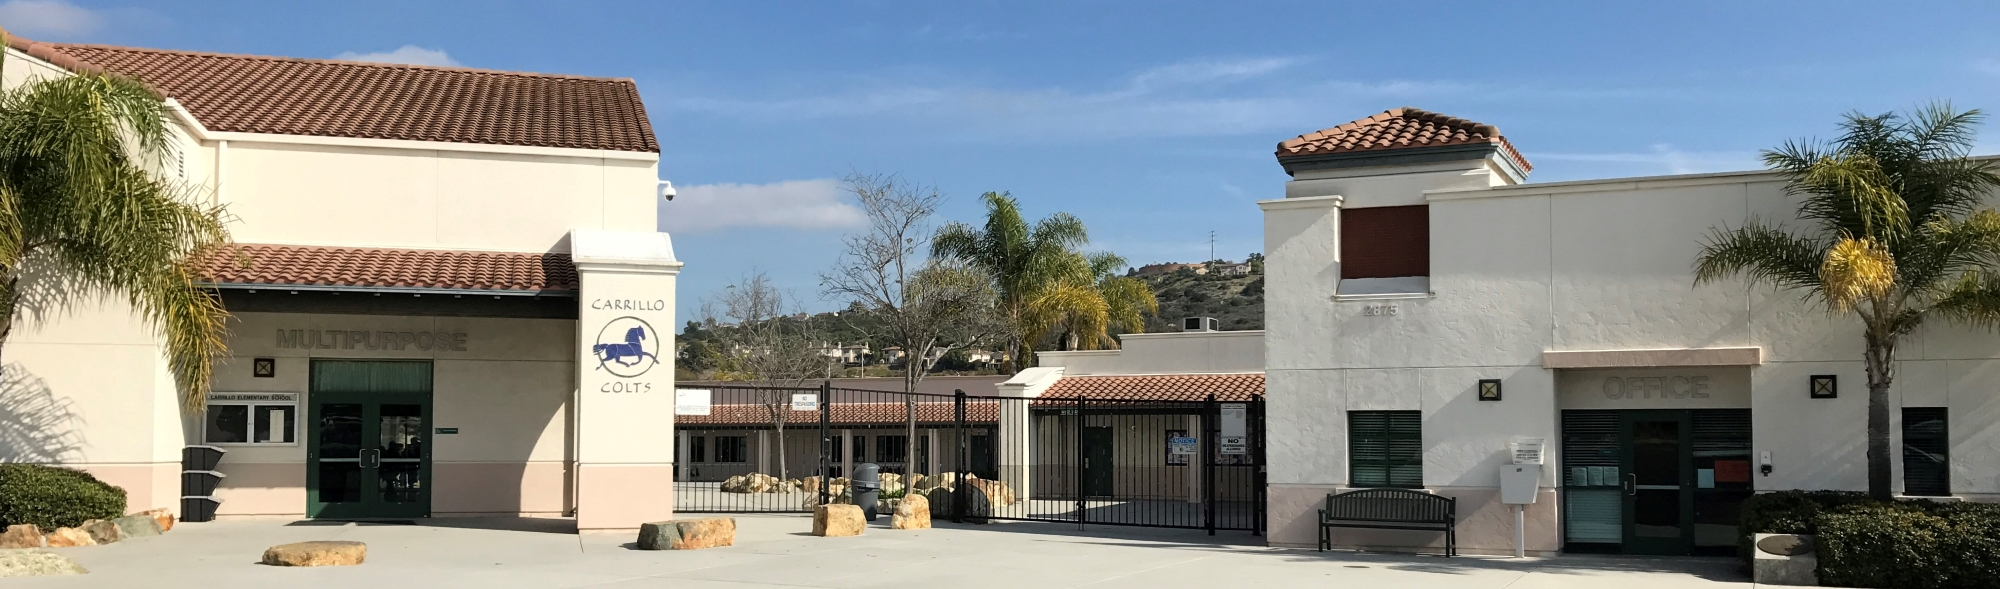 Carrillo Elementary Image